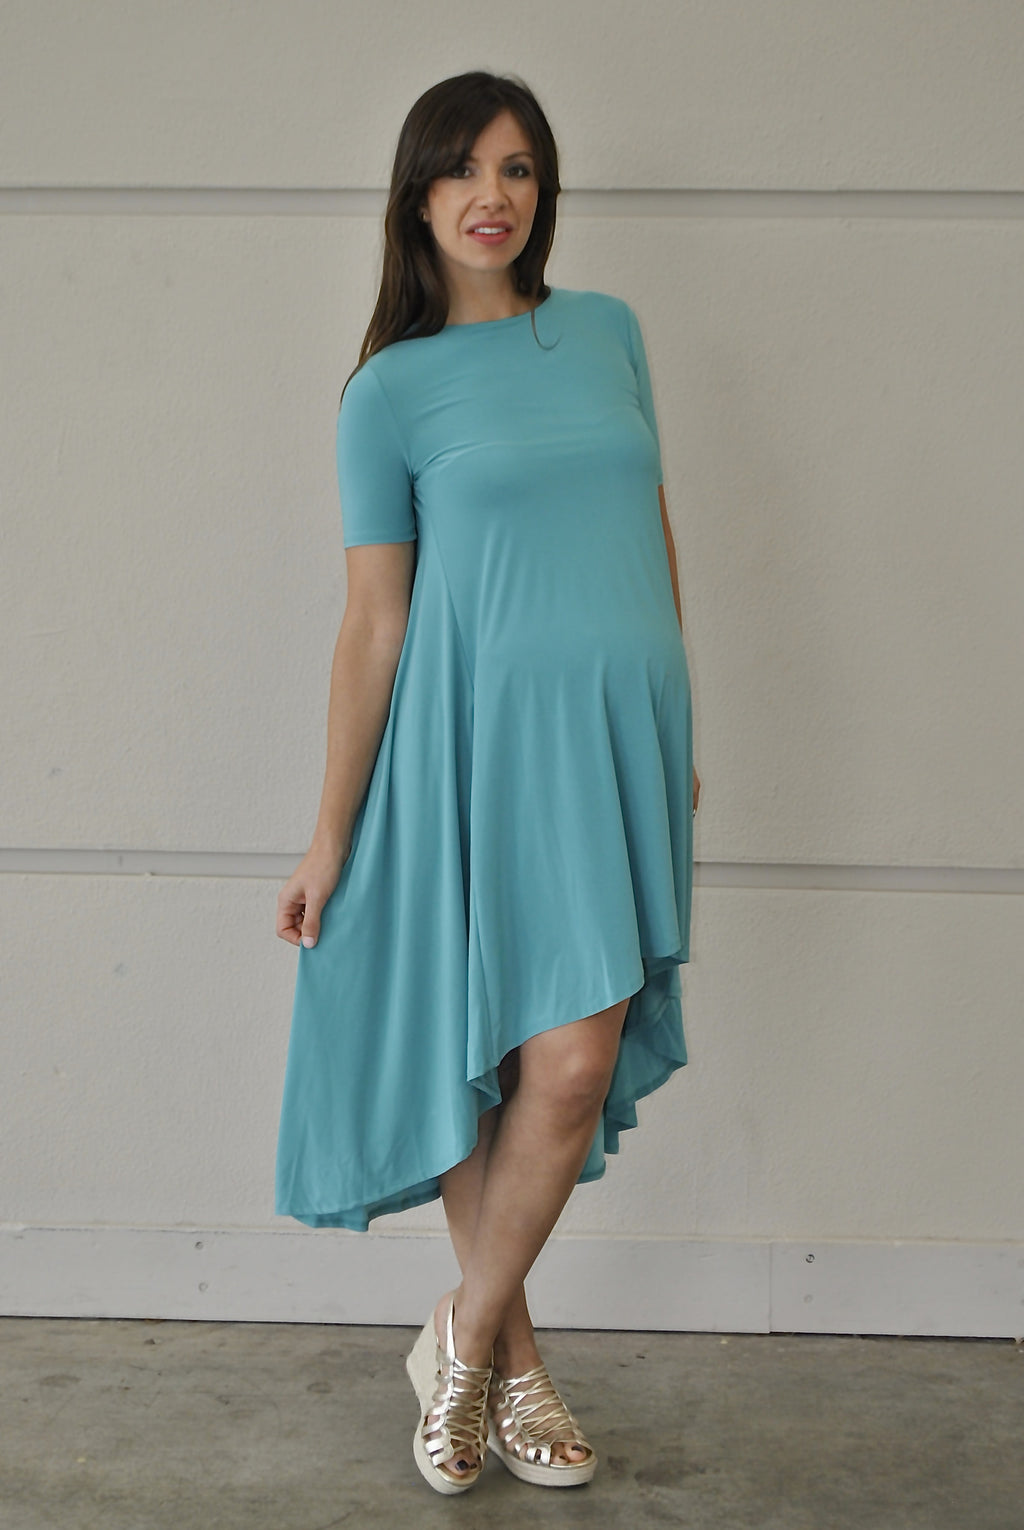 T-Shirt Dress - Mommylicious